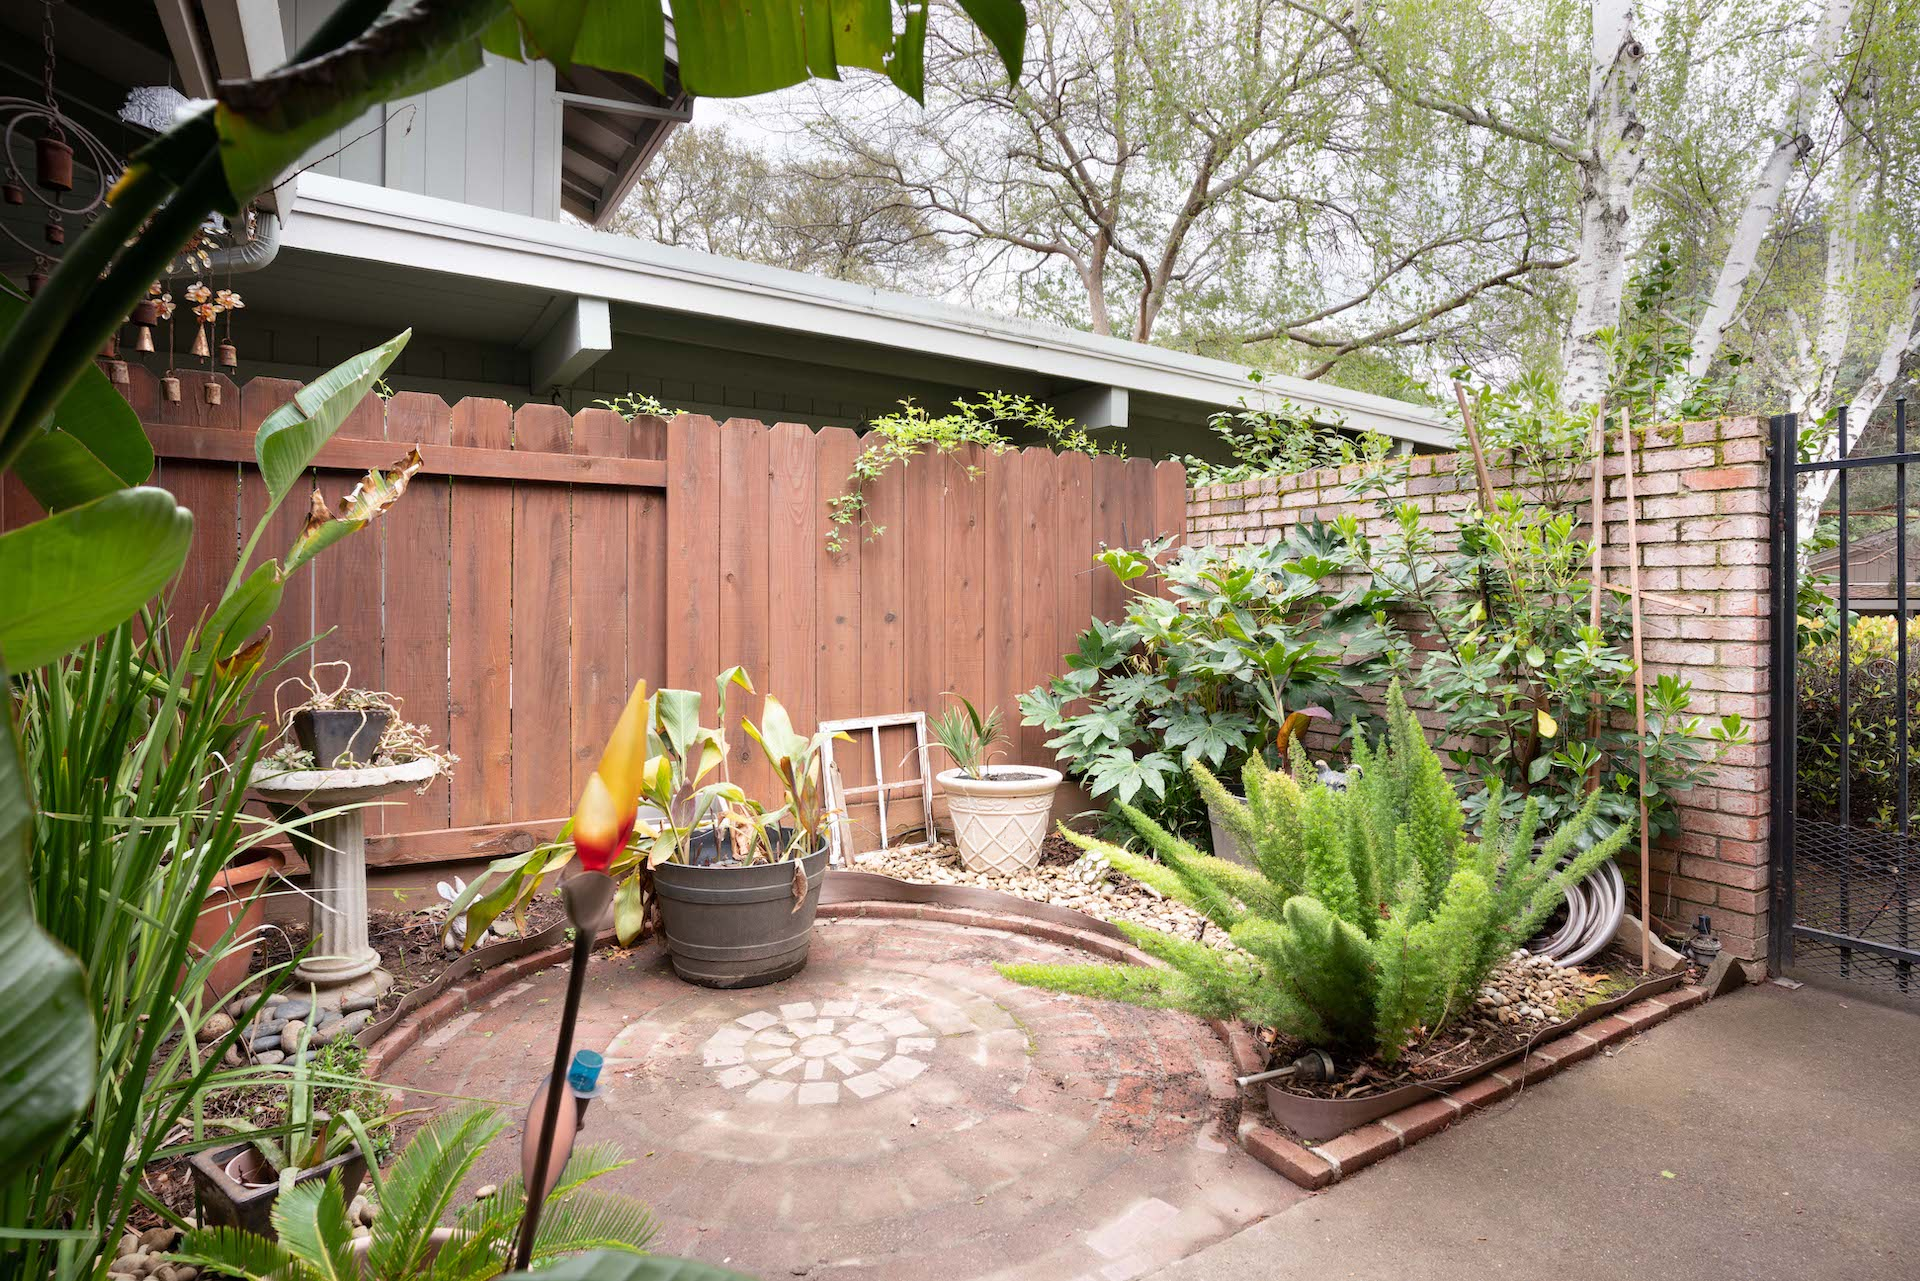 7033 La Costa Ln, Citrus Heights, Ca | Front Courtyard | Realtor In Citrus Heights